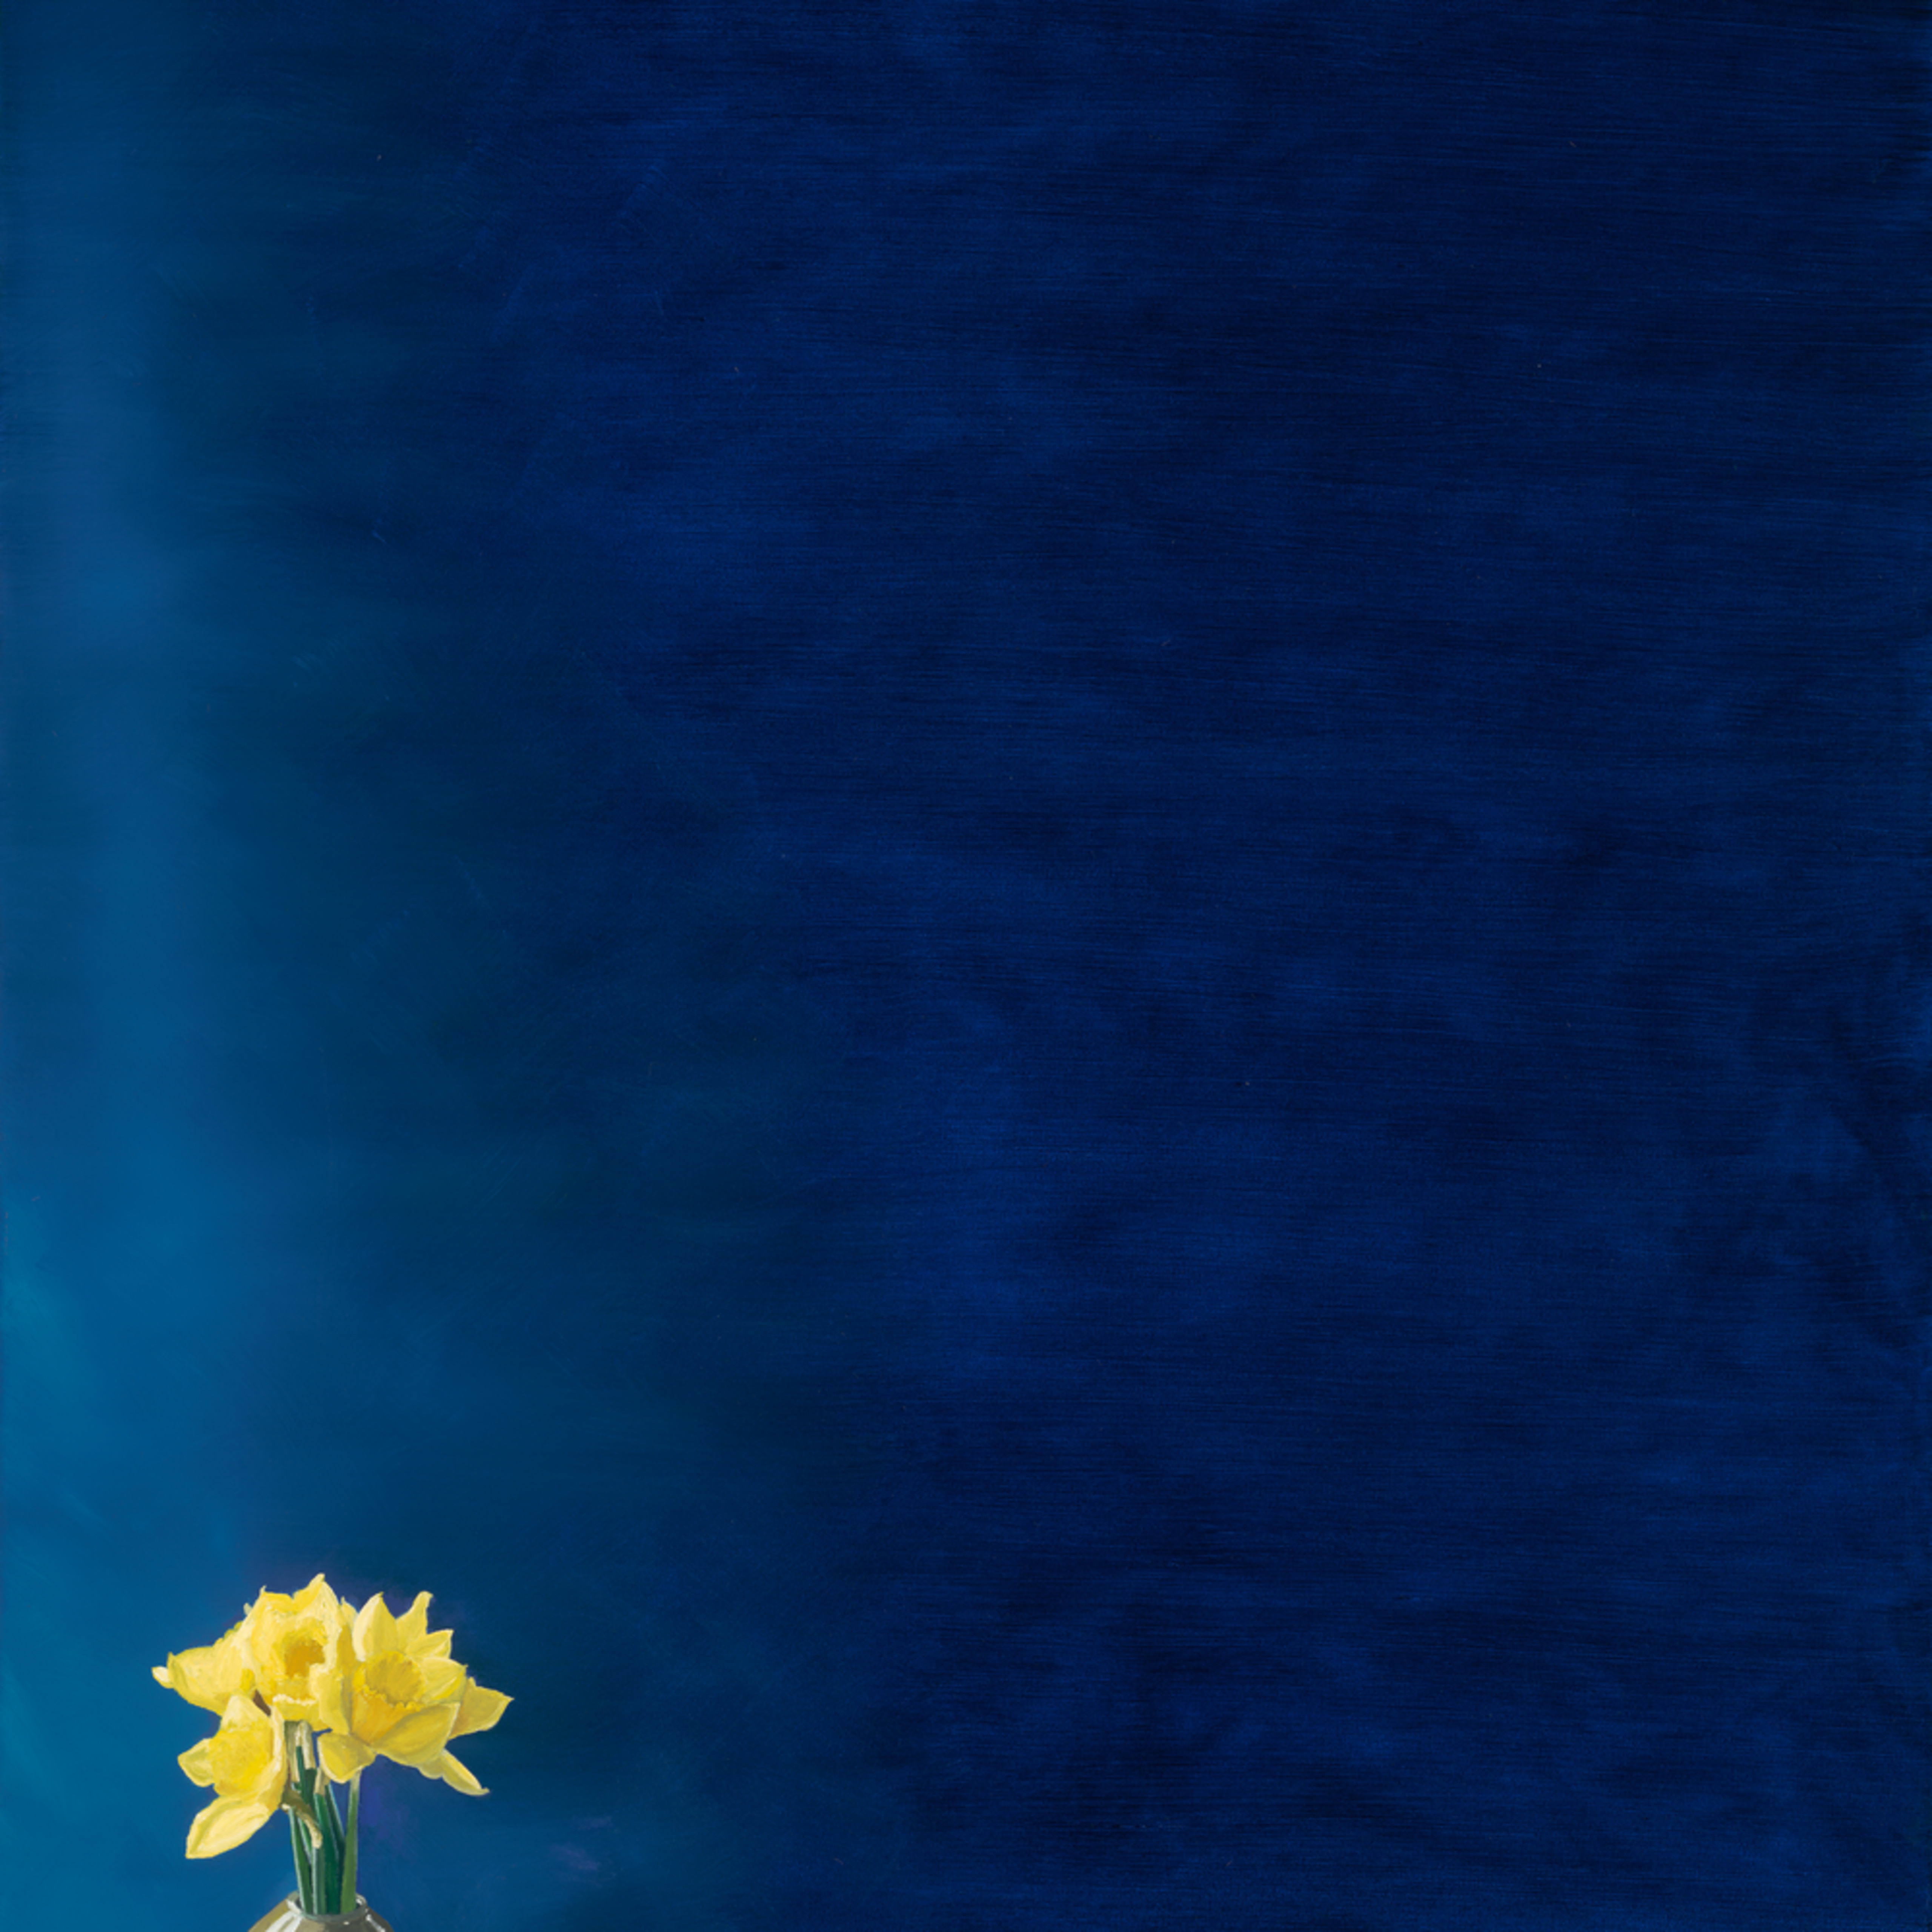 20587 brendan kramp 7   study in blue with daffodils 100mb sbikzt